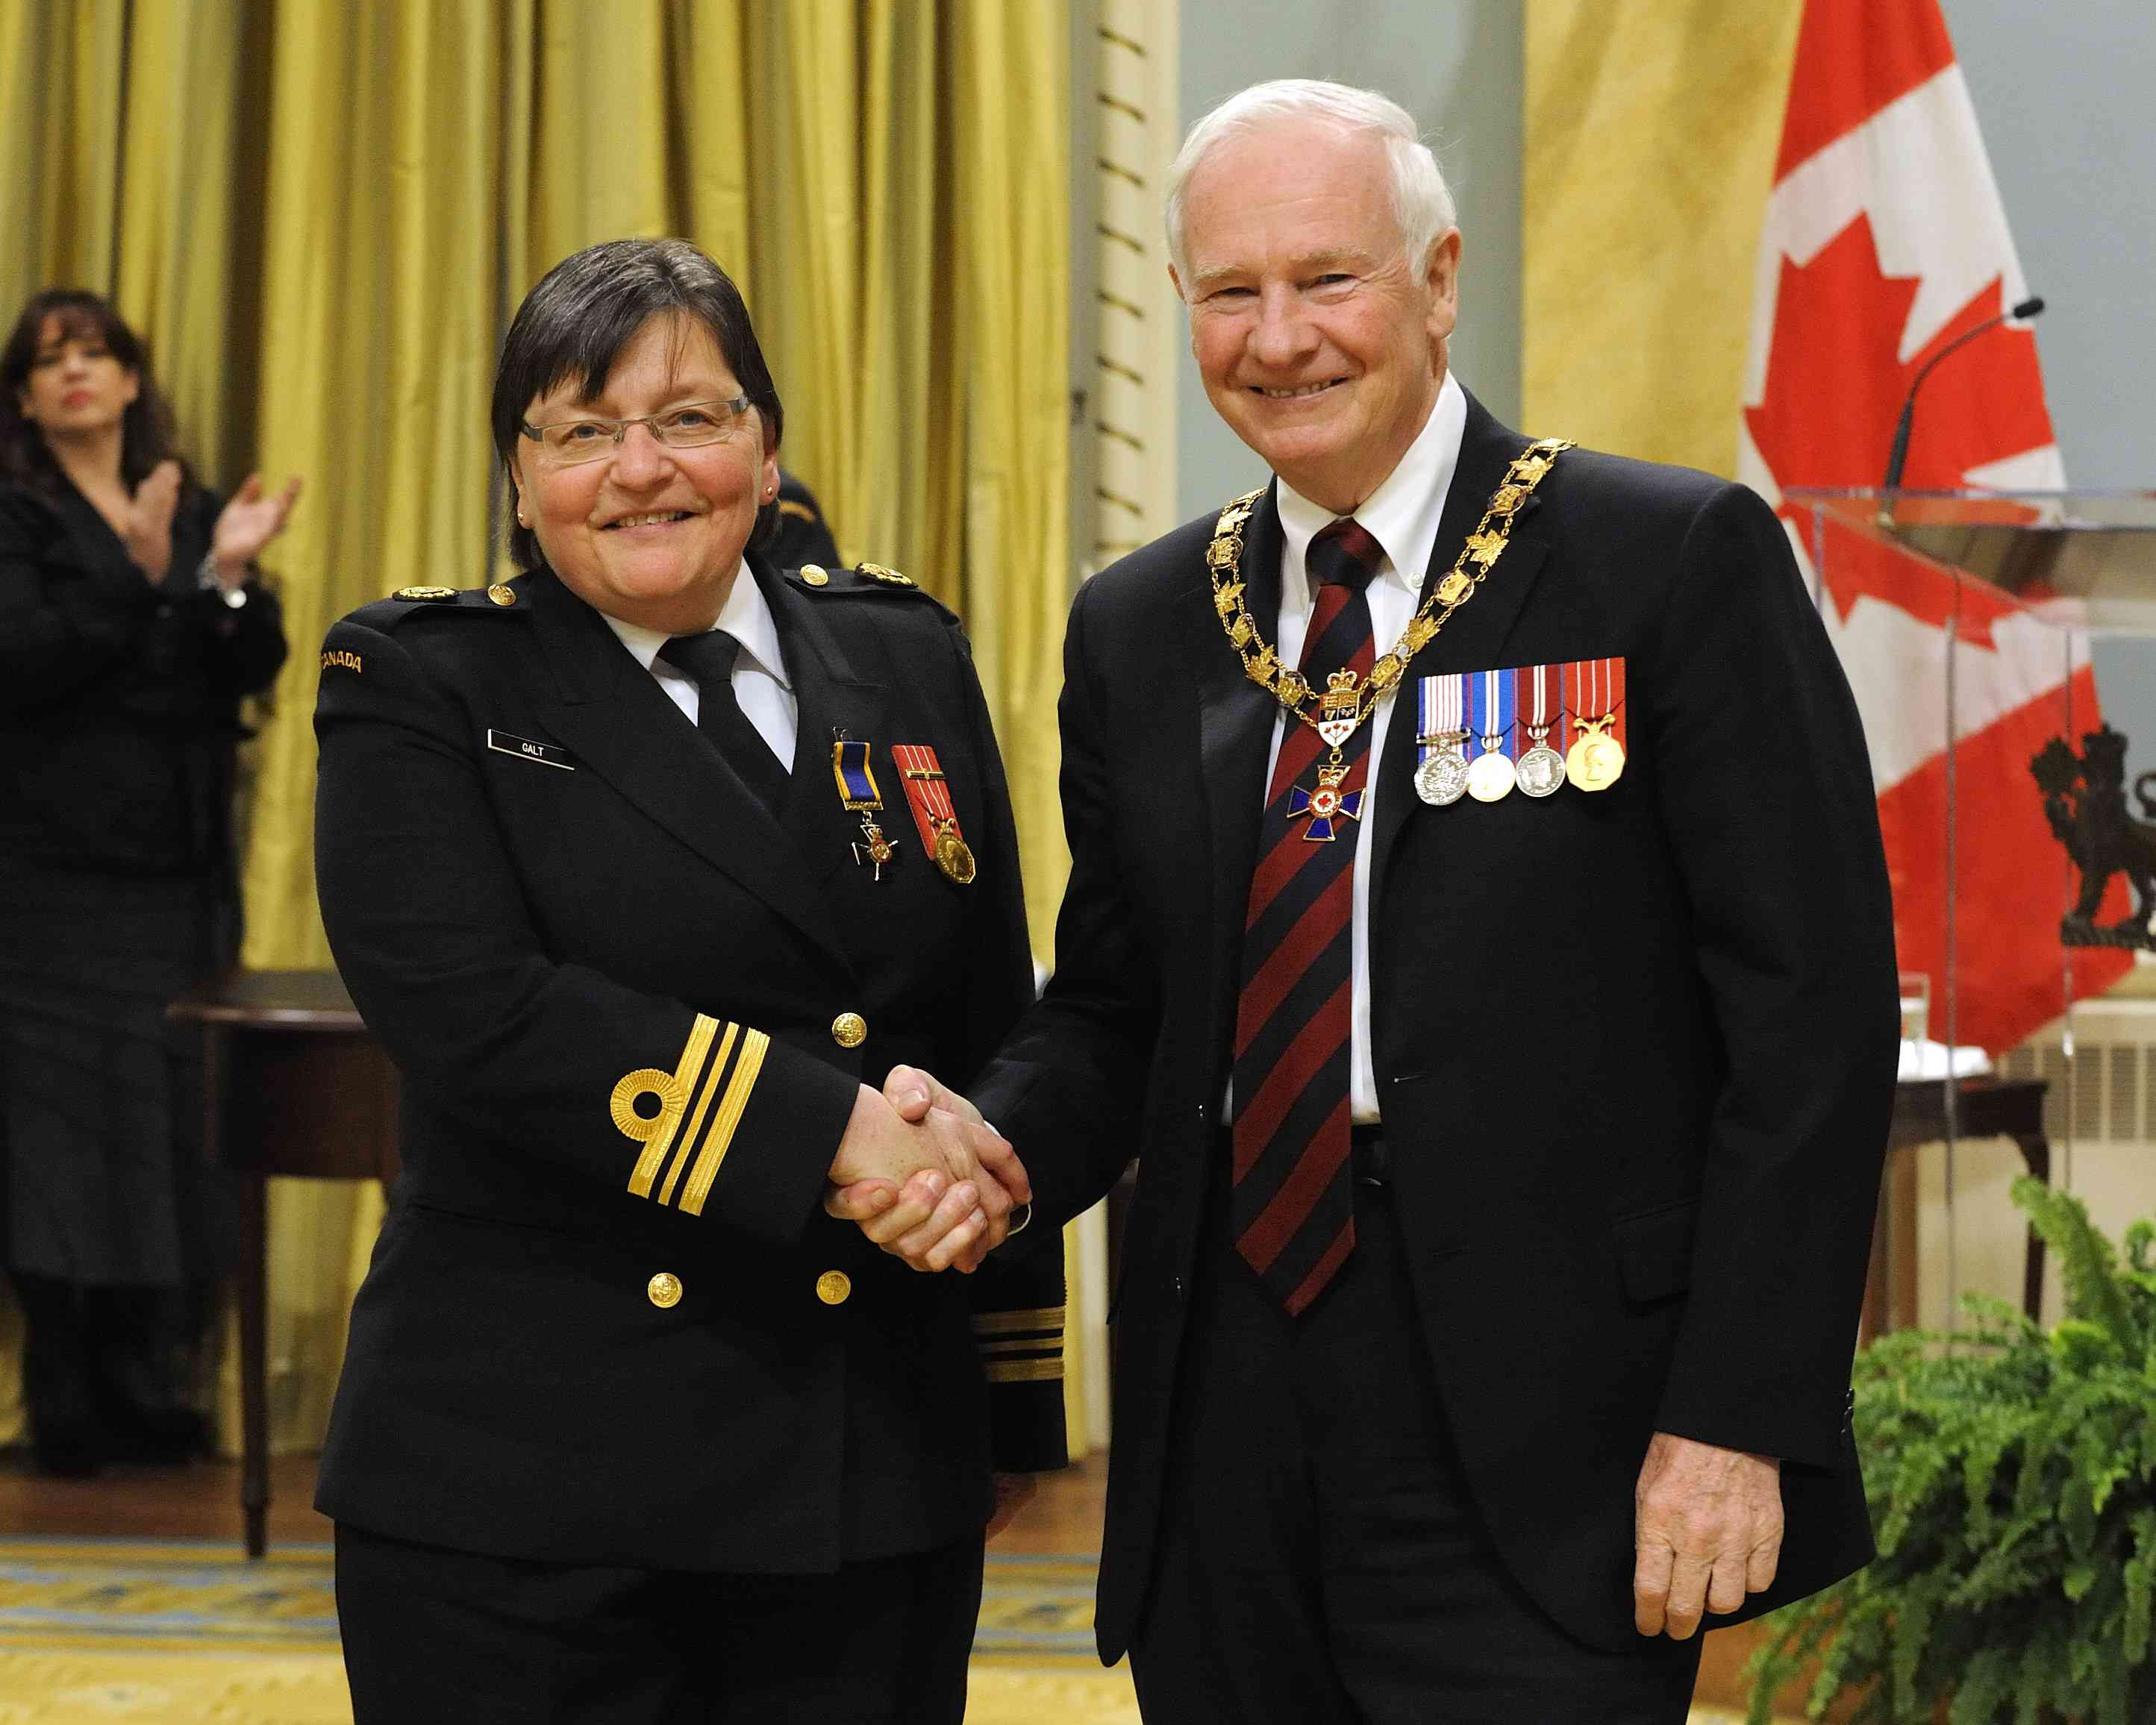 His Excellency presented the Order of Military Merit at the Officer level (O.M.M.) to Lieutenant-Commander Cindy Galt, O.M.M., C.D., 1231 Royal Canadian Army Cadet Corps,